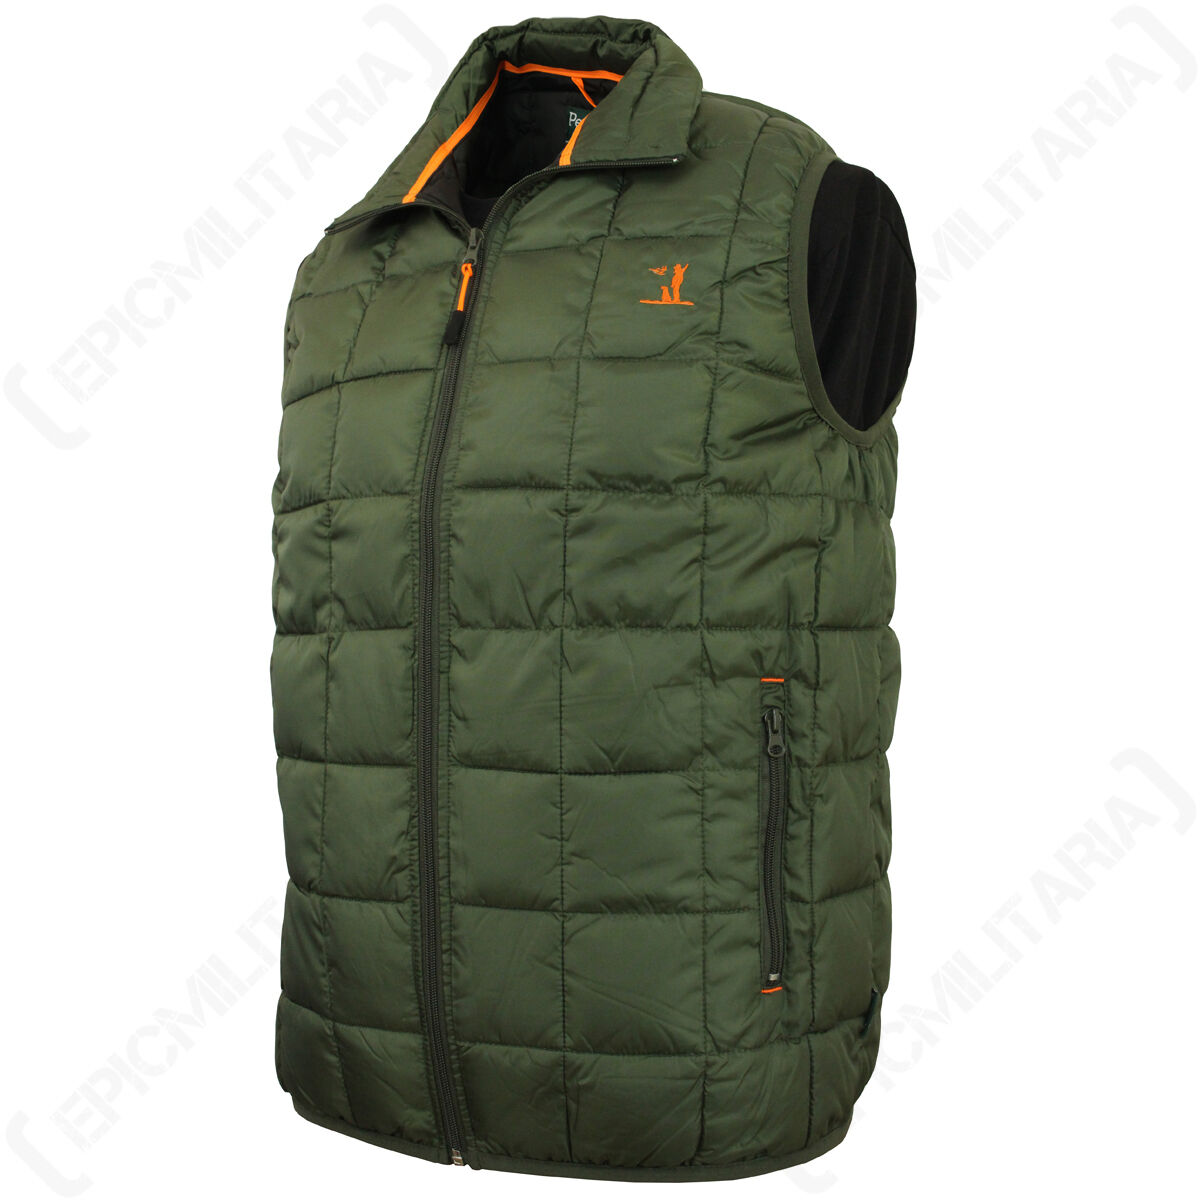 854bc22cf24 Percussion Idaho Hunting Warm Gilet Vest - Olive - Body Warmer Waistcoat  Outdoor